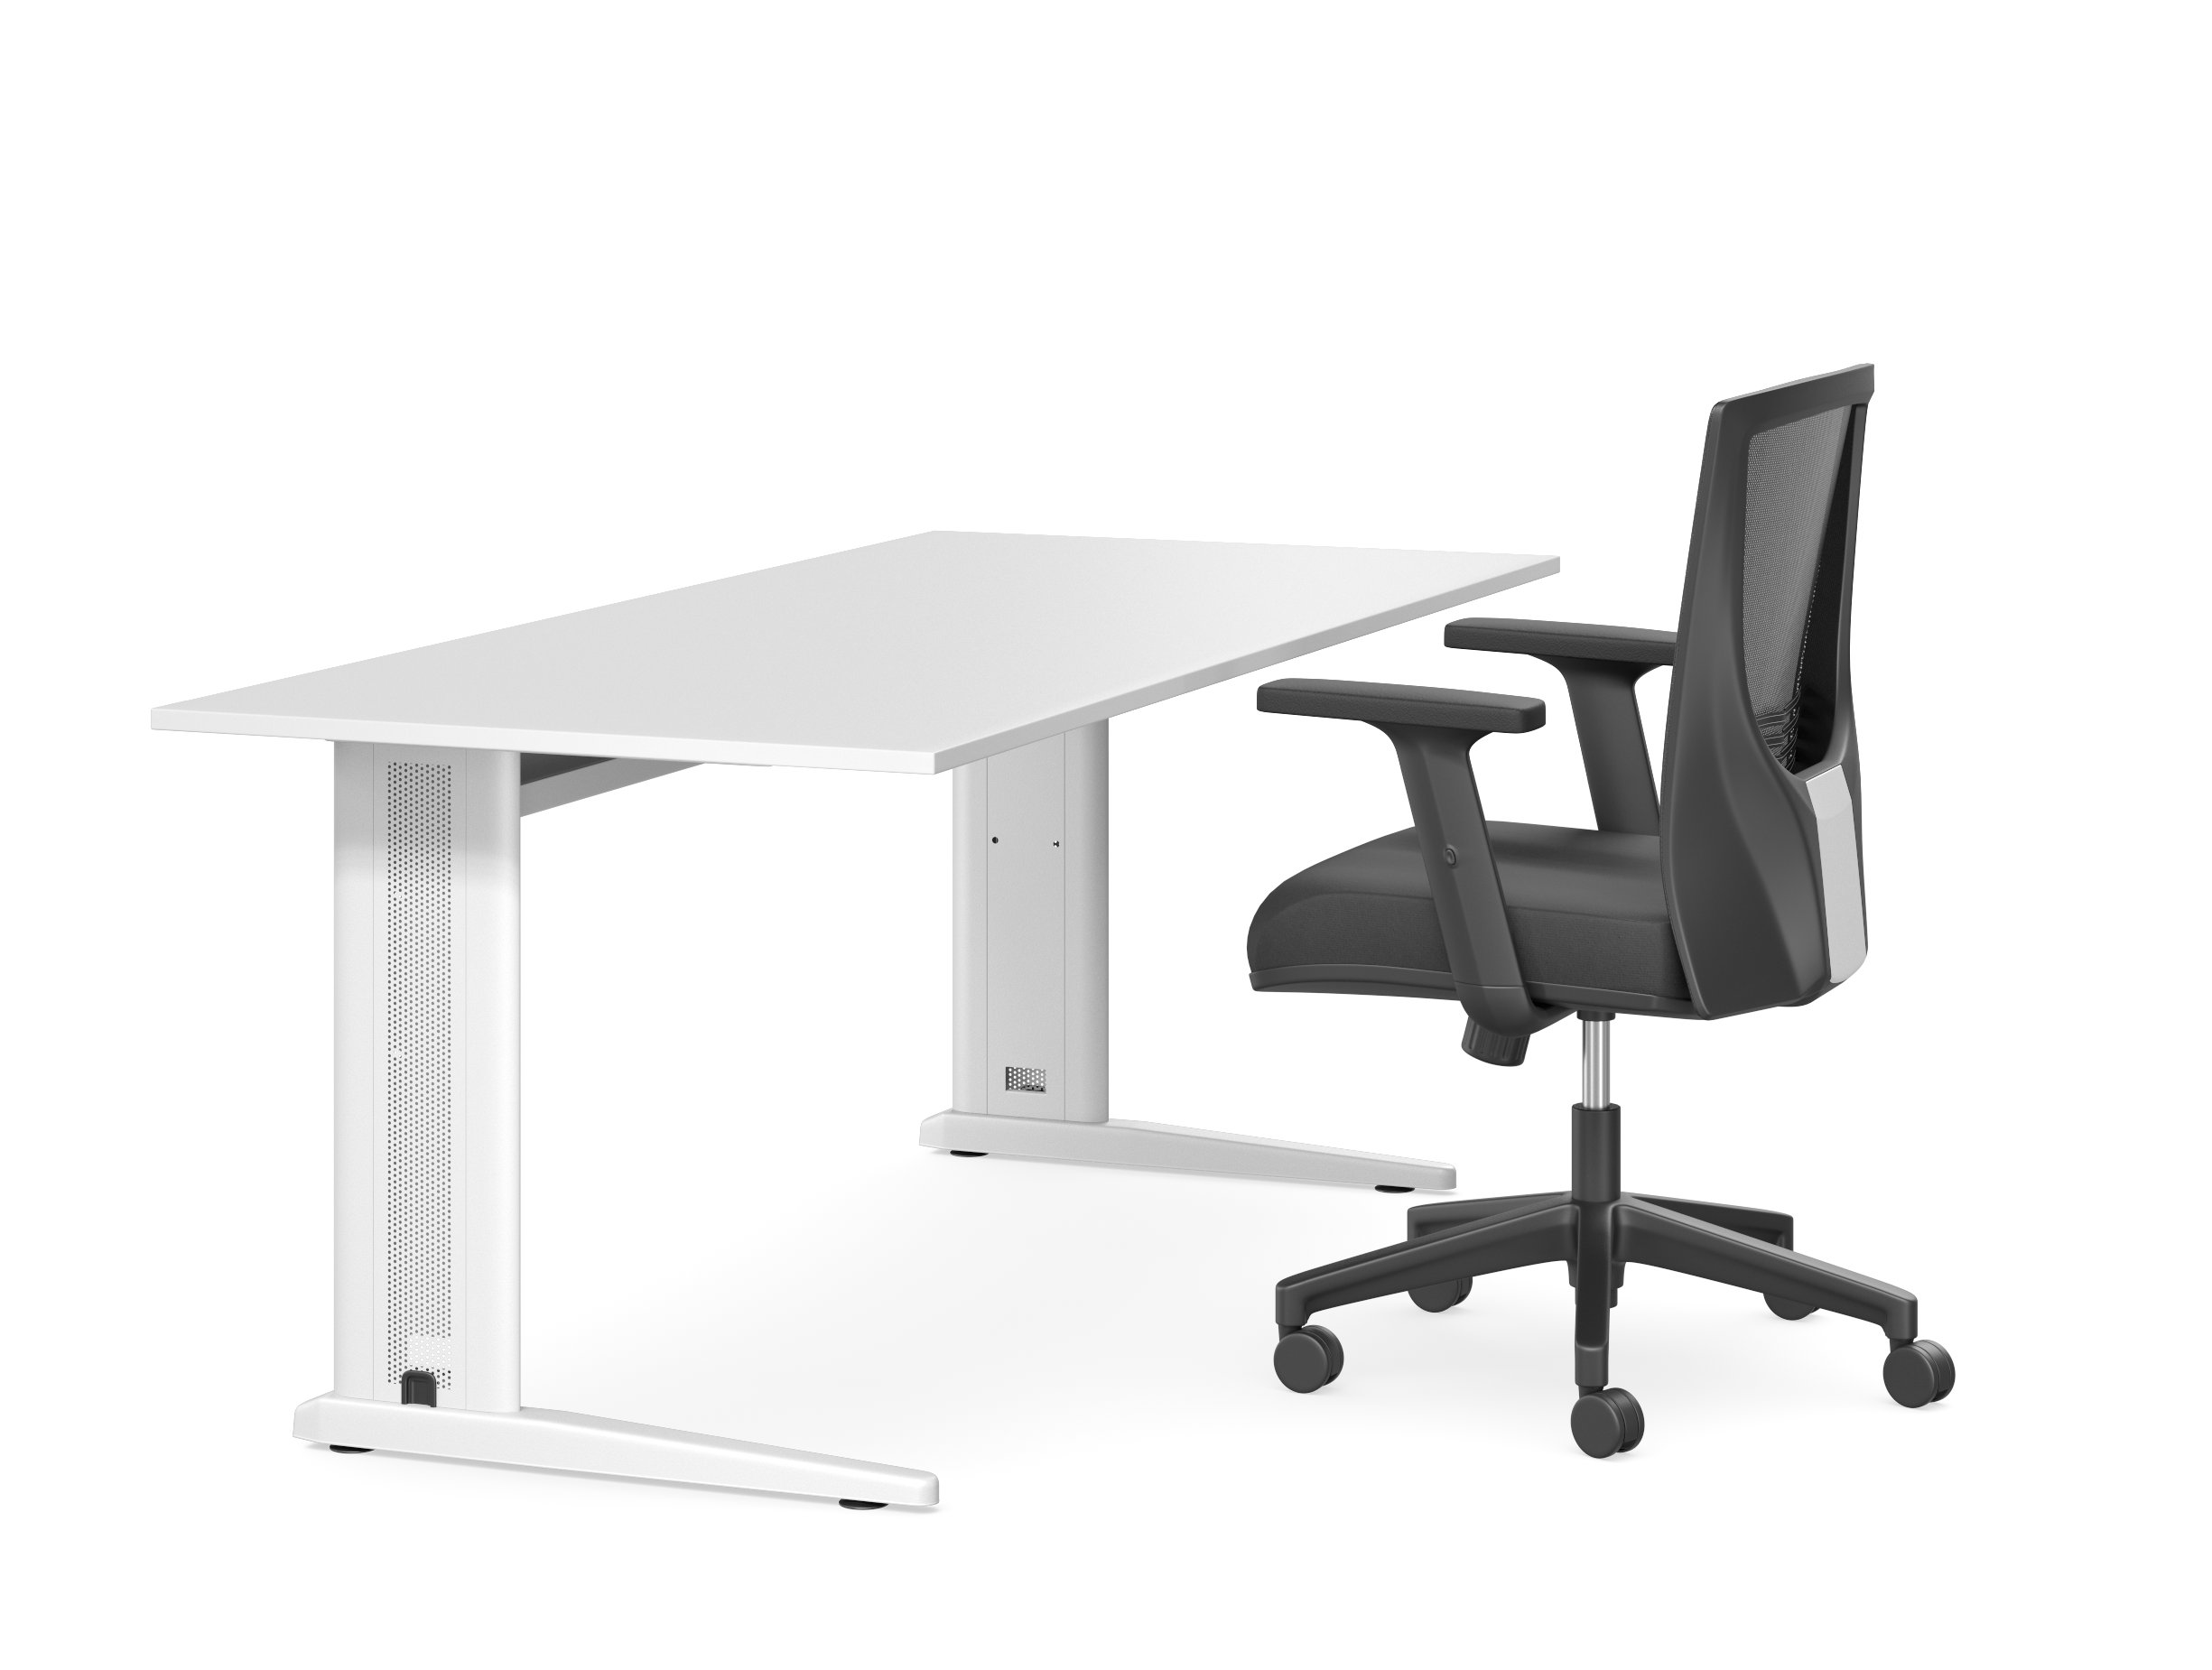 ergo adjustable desk rate computer height electric most elevator first flair